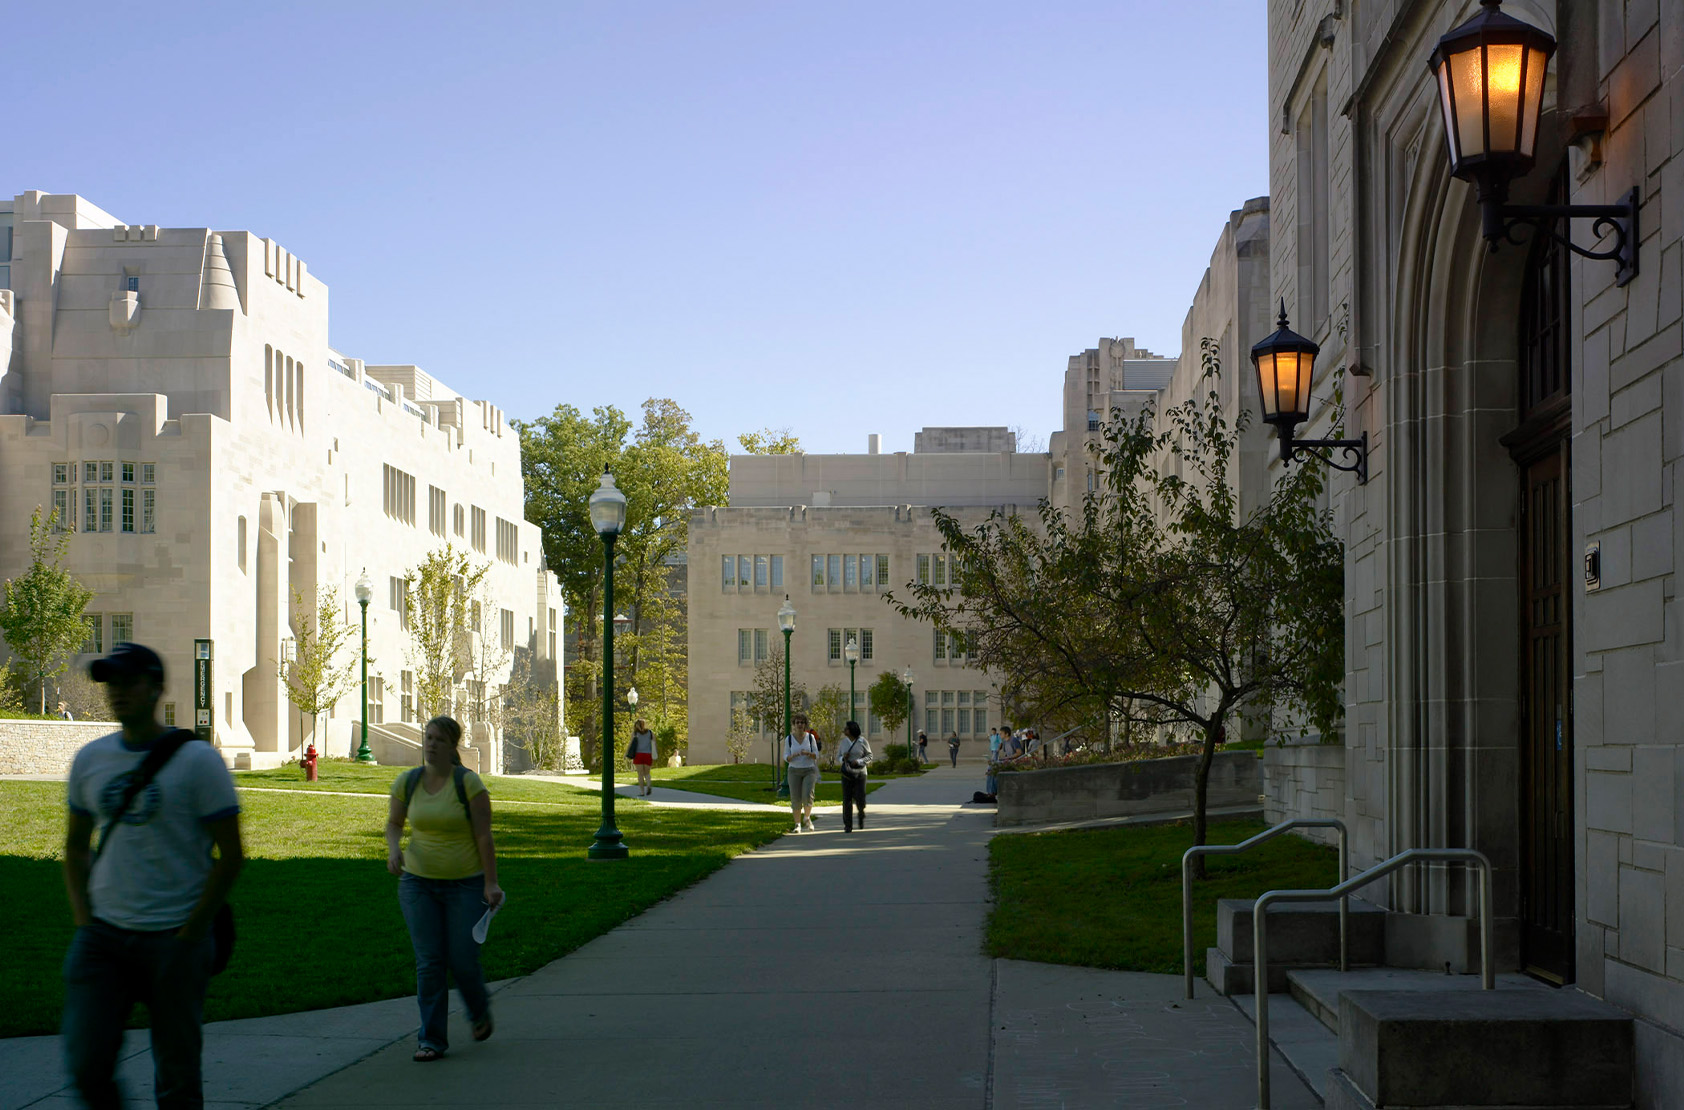 Indiana University - Simon Hall